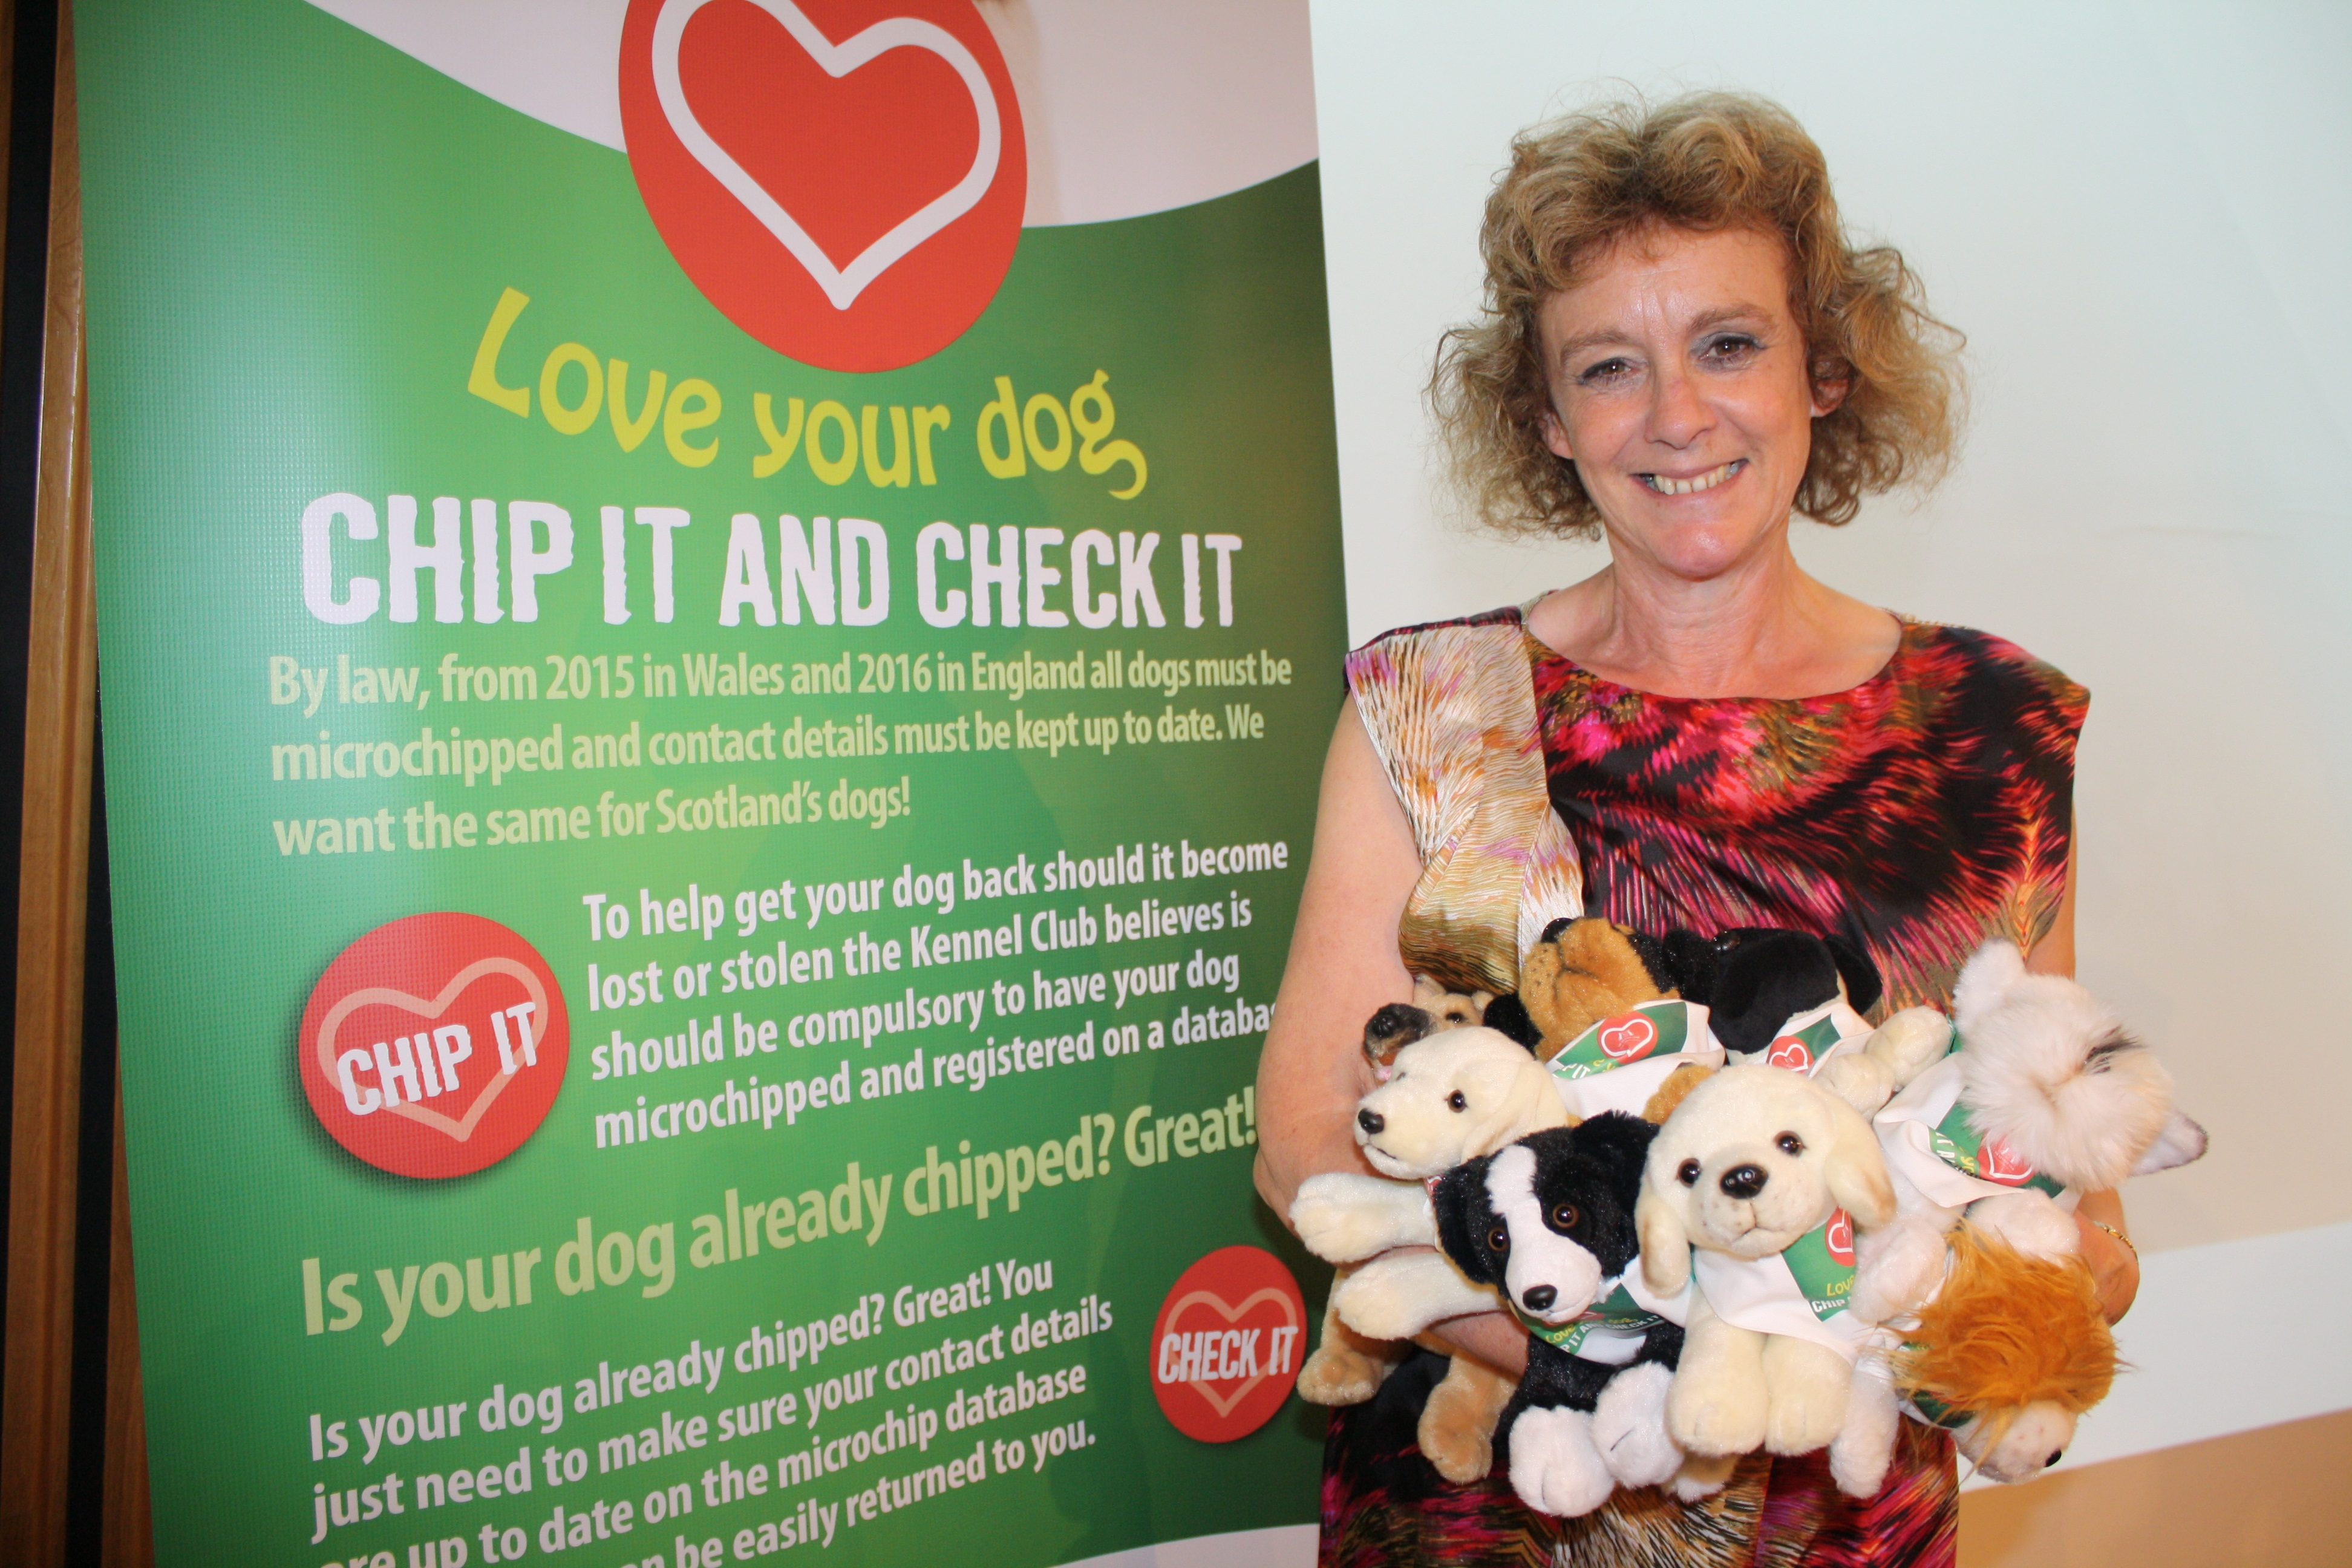 Elaine_Murray_MSP_supporting_Chip_It_and_Check_It_campaign.jpg